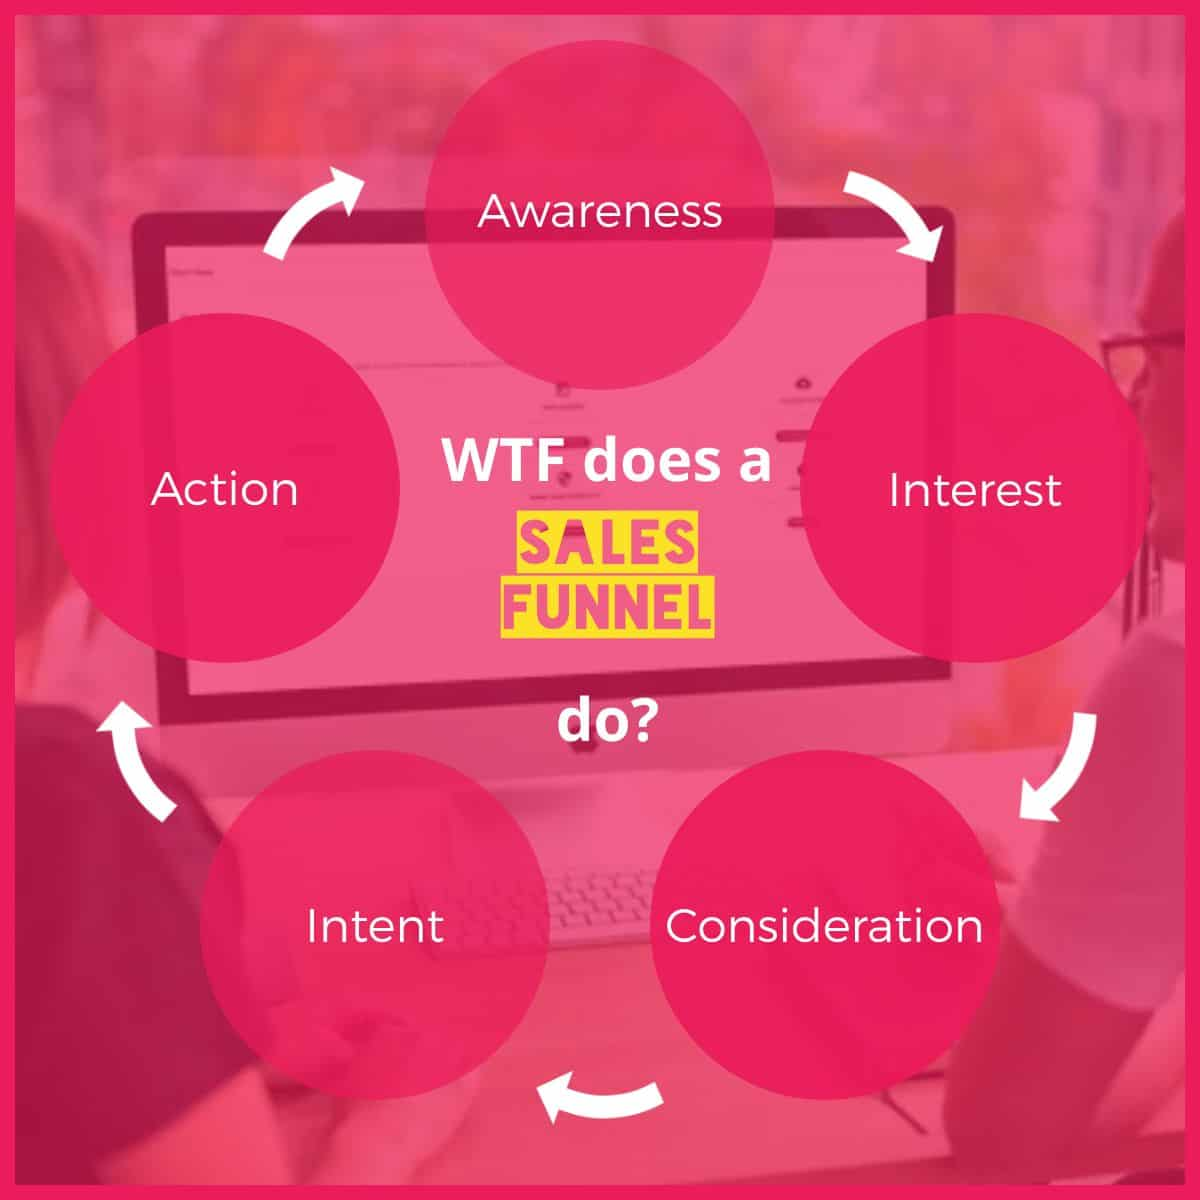 what does a sales funnel do